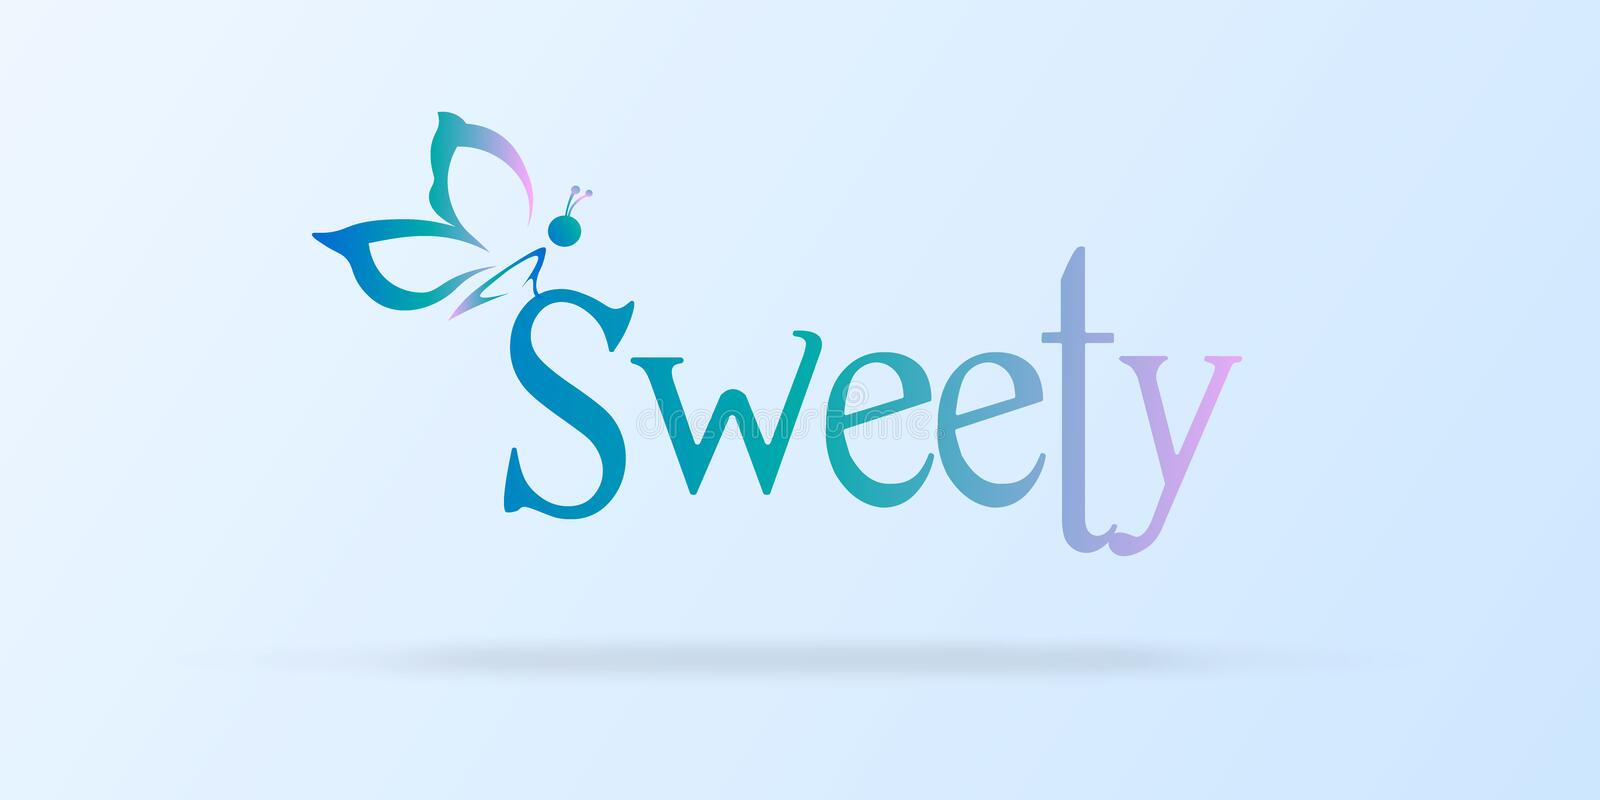 Sweet background with a butterfly silhouette and cute stock illustration